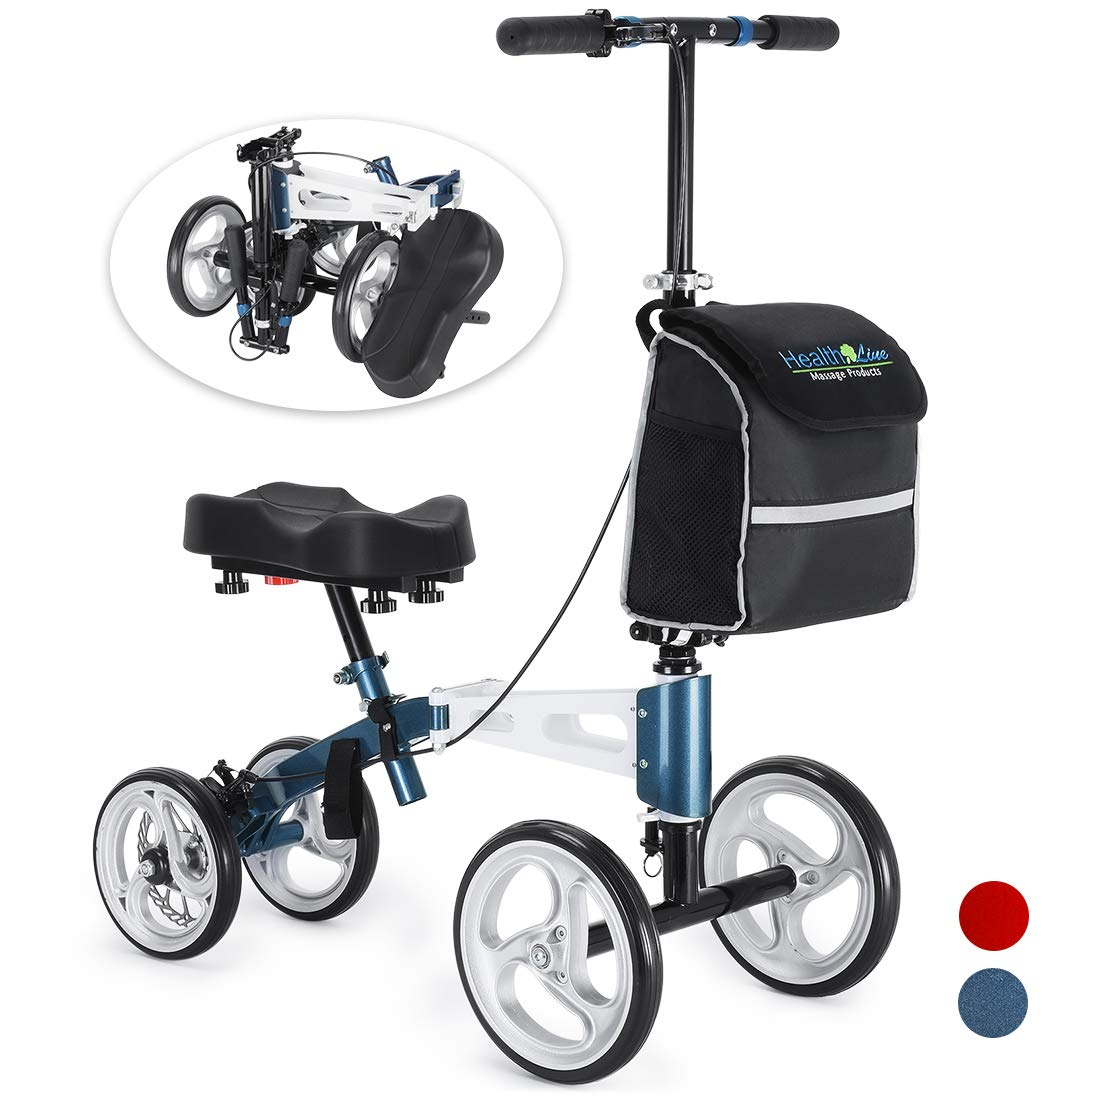 Health Line Aluminum Knee Scooter Steerable Knee Walker with Strong Disc Brake and Large Bag, Crutches Alternative for Foot Injuries Ankles Surgery, Compact & Portable, Royal Blue & White by HEALTH LINE MASSAGE PRODUCTS